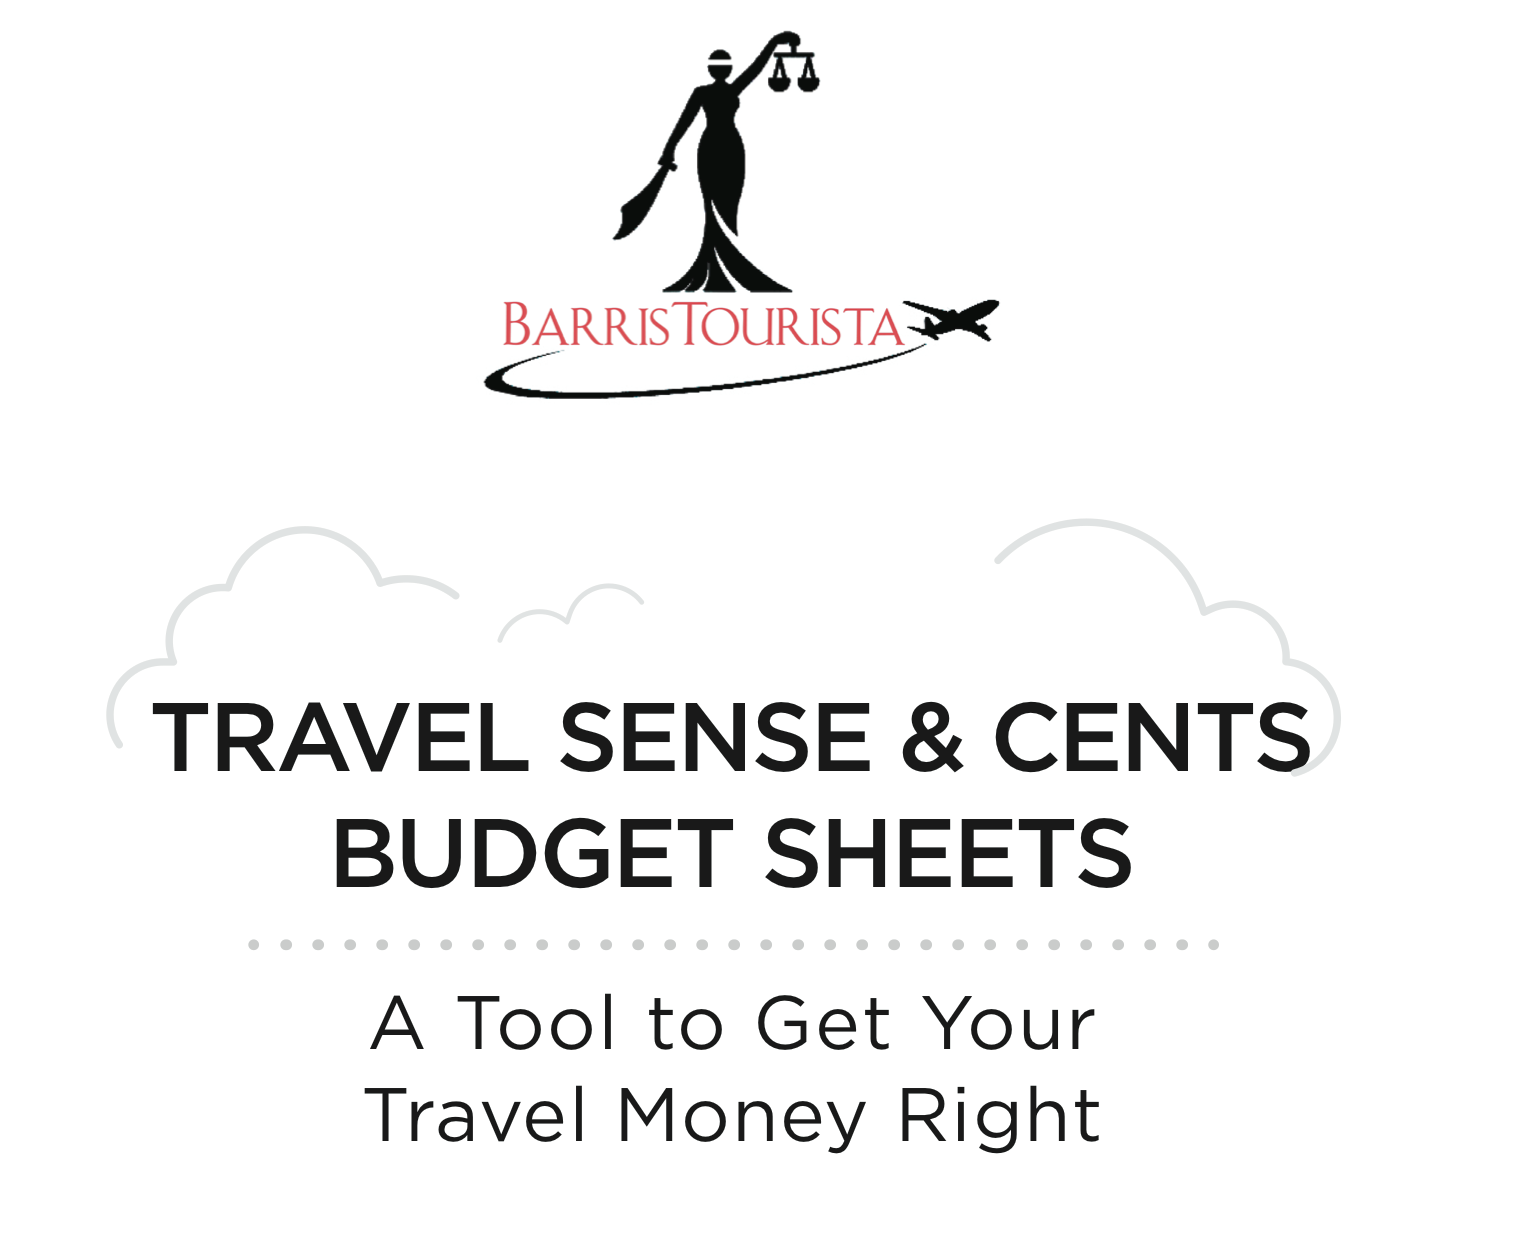 Travel Sense & Cents Budget Sheets BarrisTourista